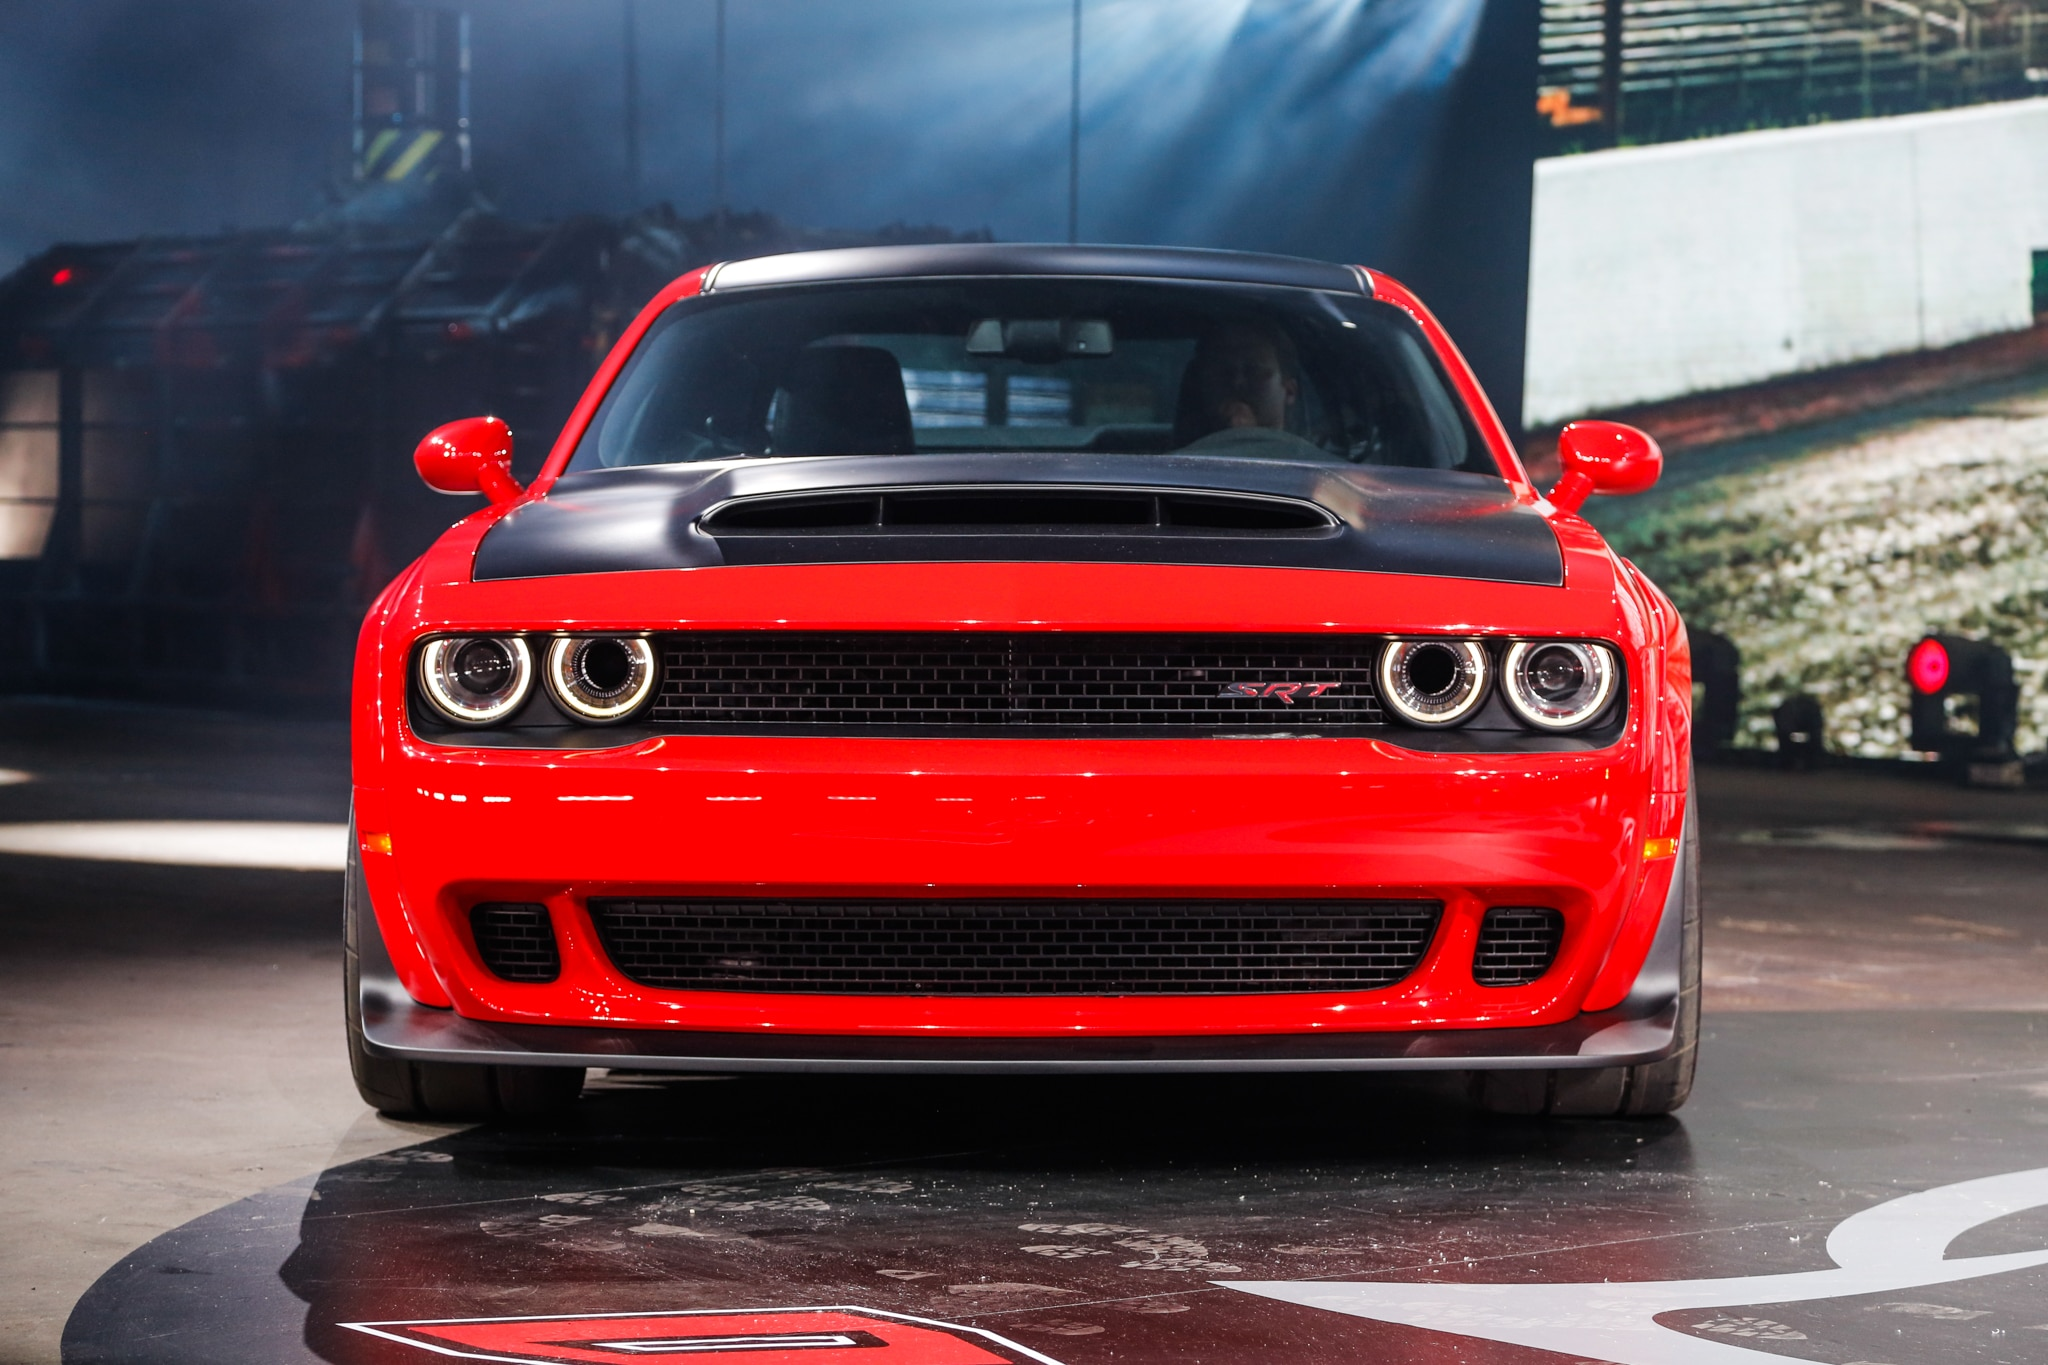 2018 dodge challenger srt demon arrives with 840 horsepower for the track automobile magazine. Black Bedroom Furniture Sets. Home Design Ideas